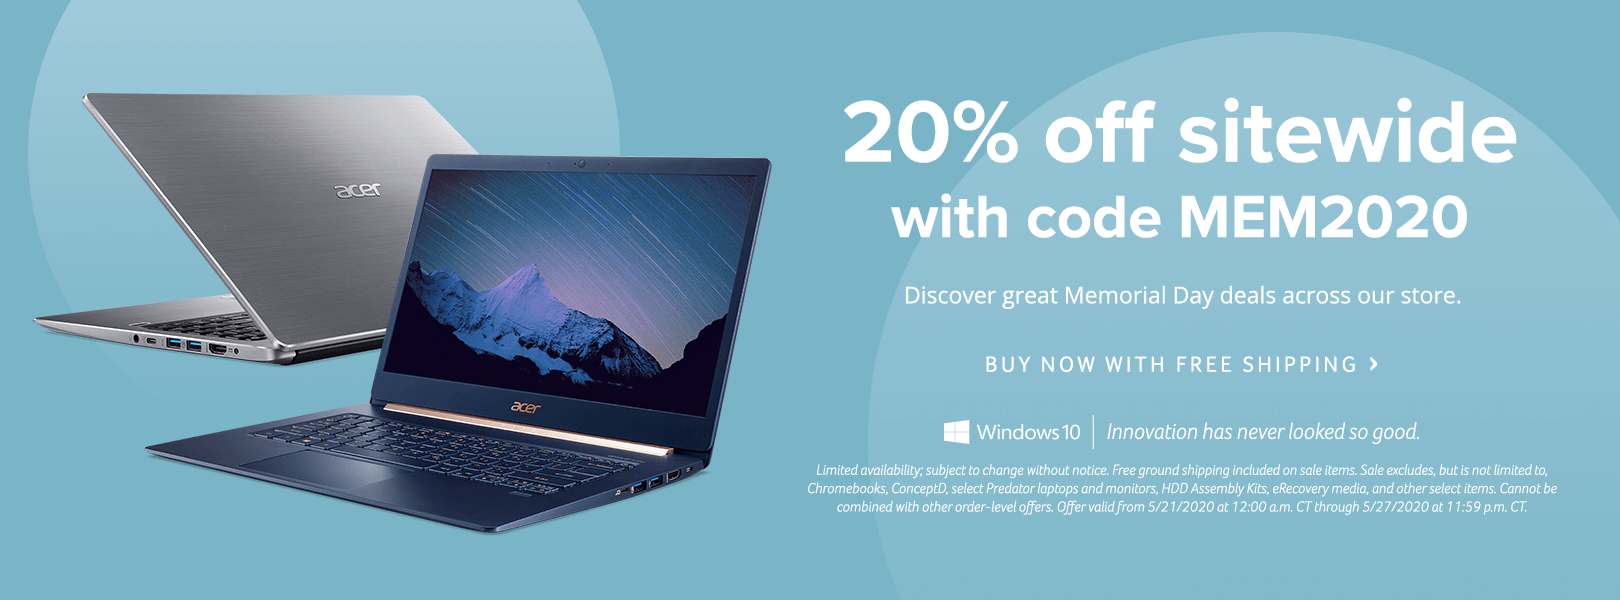 Save 20% Sitewide during the Acer Memorial Day Sale with promo code MEM2020.